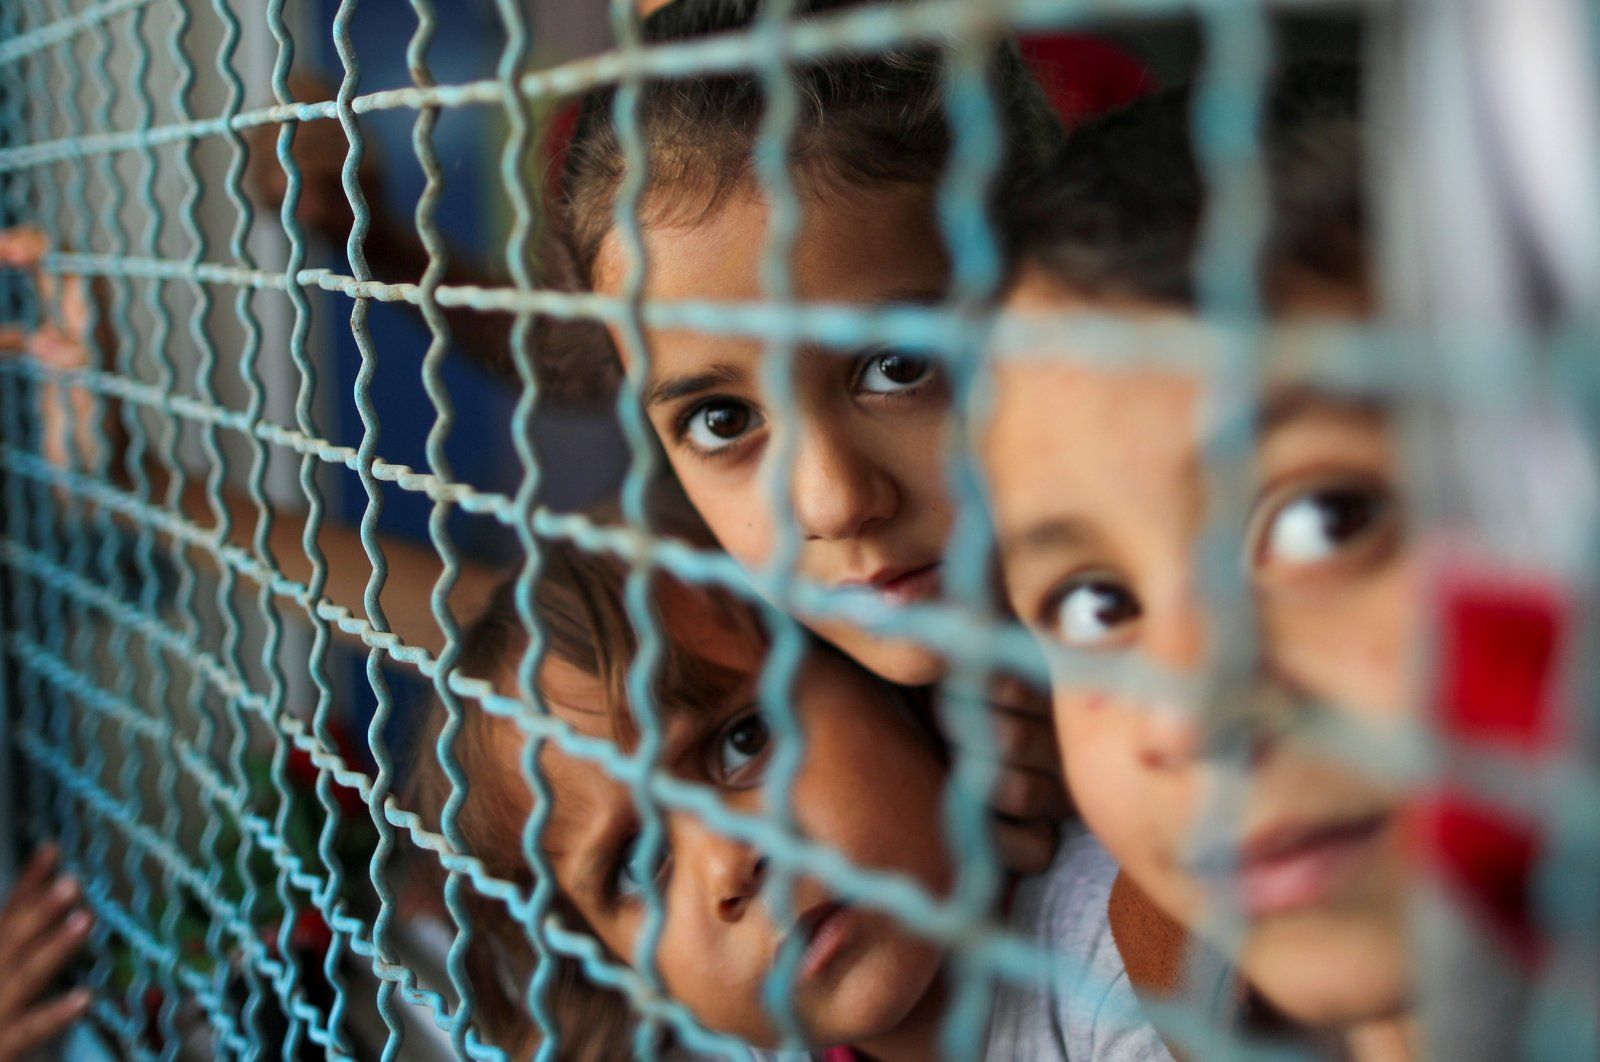 Palestinian children, who fled their homes due to Israeli air and artillery strikes, look through a window fence at a United Nations-run school where they take refuge, in Gaza City, Palestine, May 18, 2021.  (Reuters Photo)